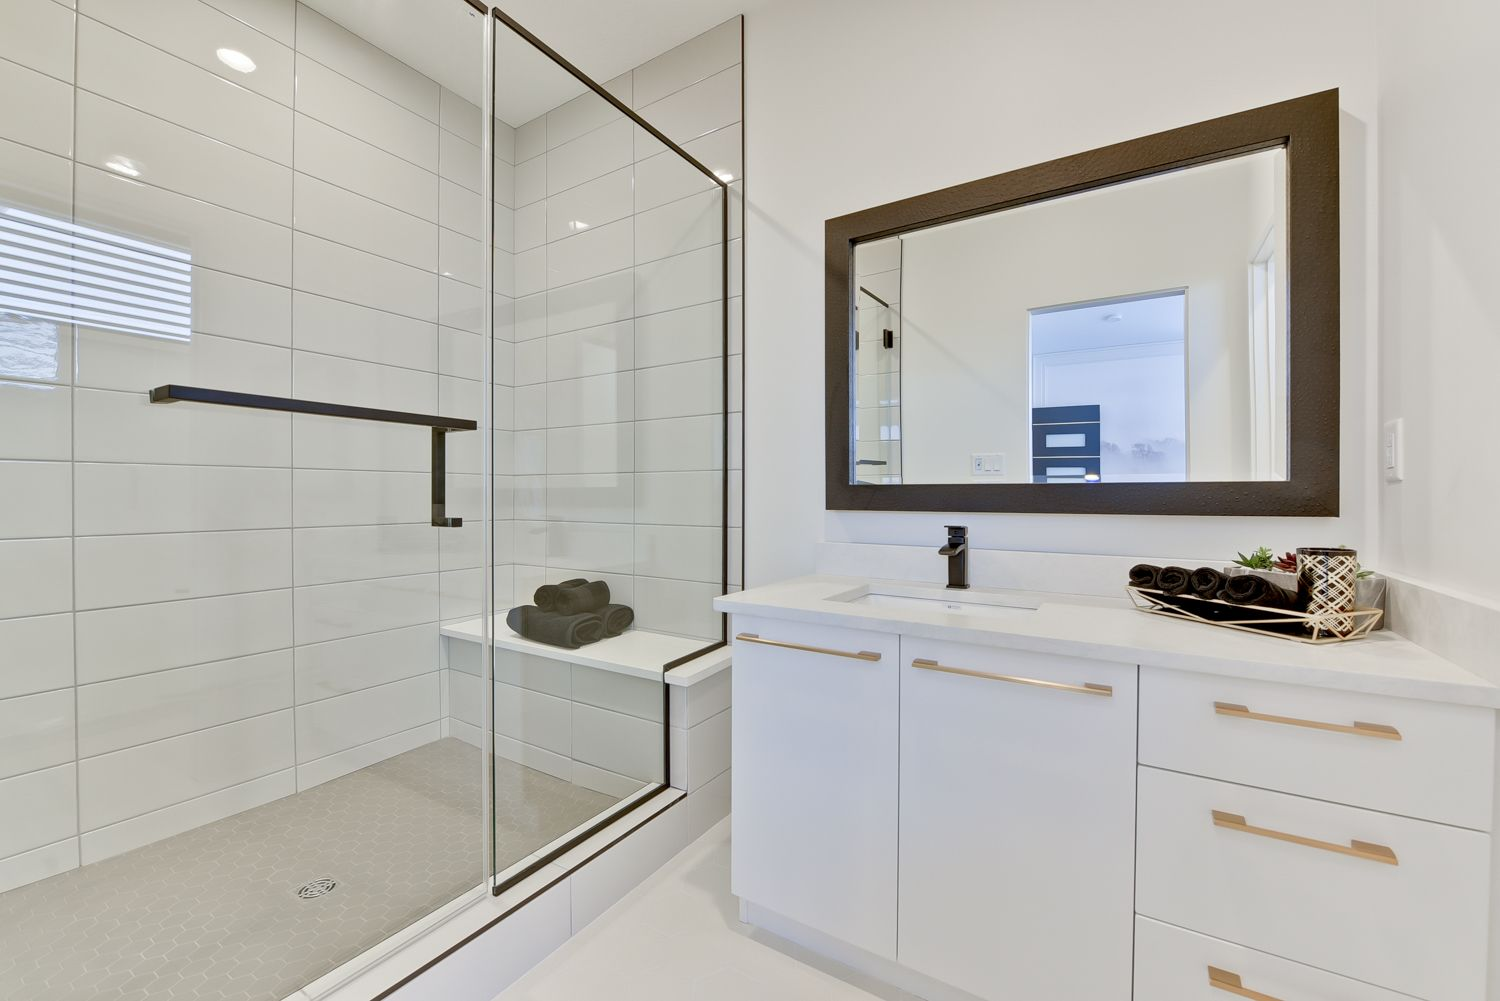 Walk in shower with glass door in bathroom with large white tiles ...